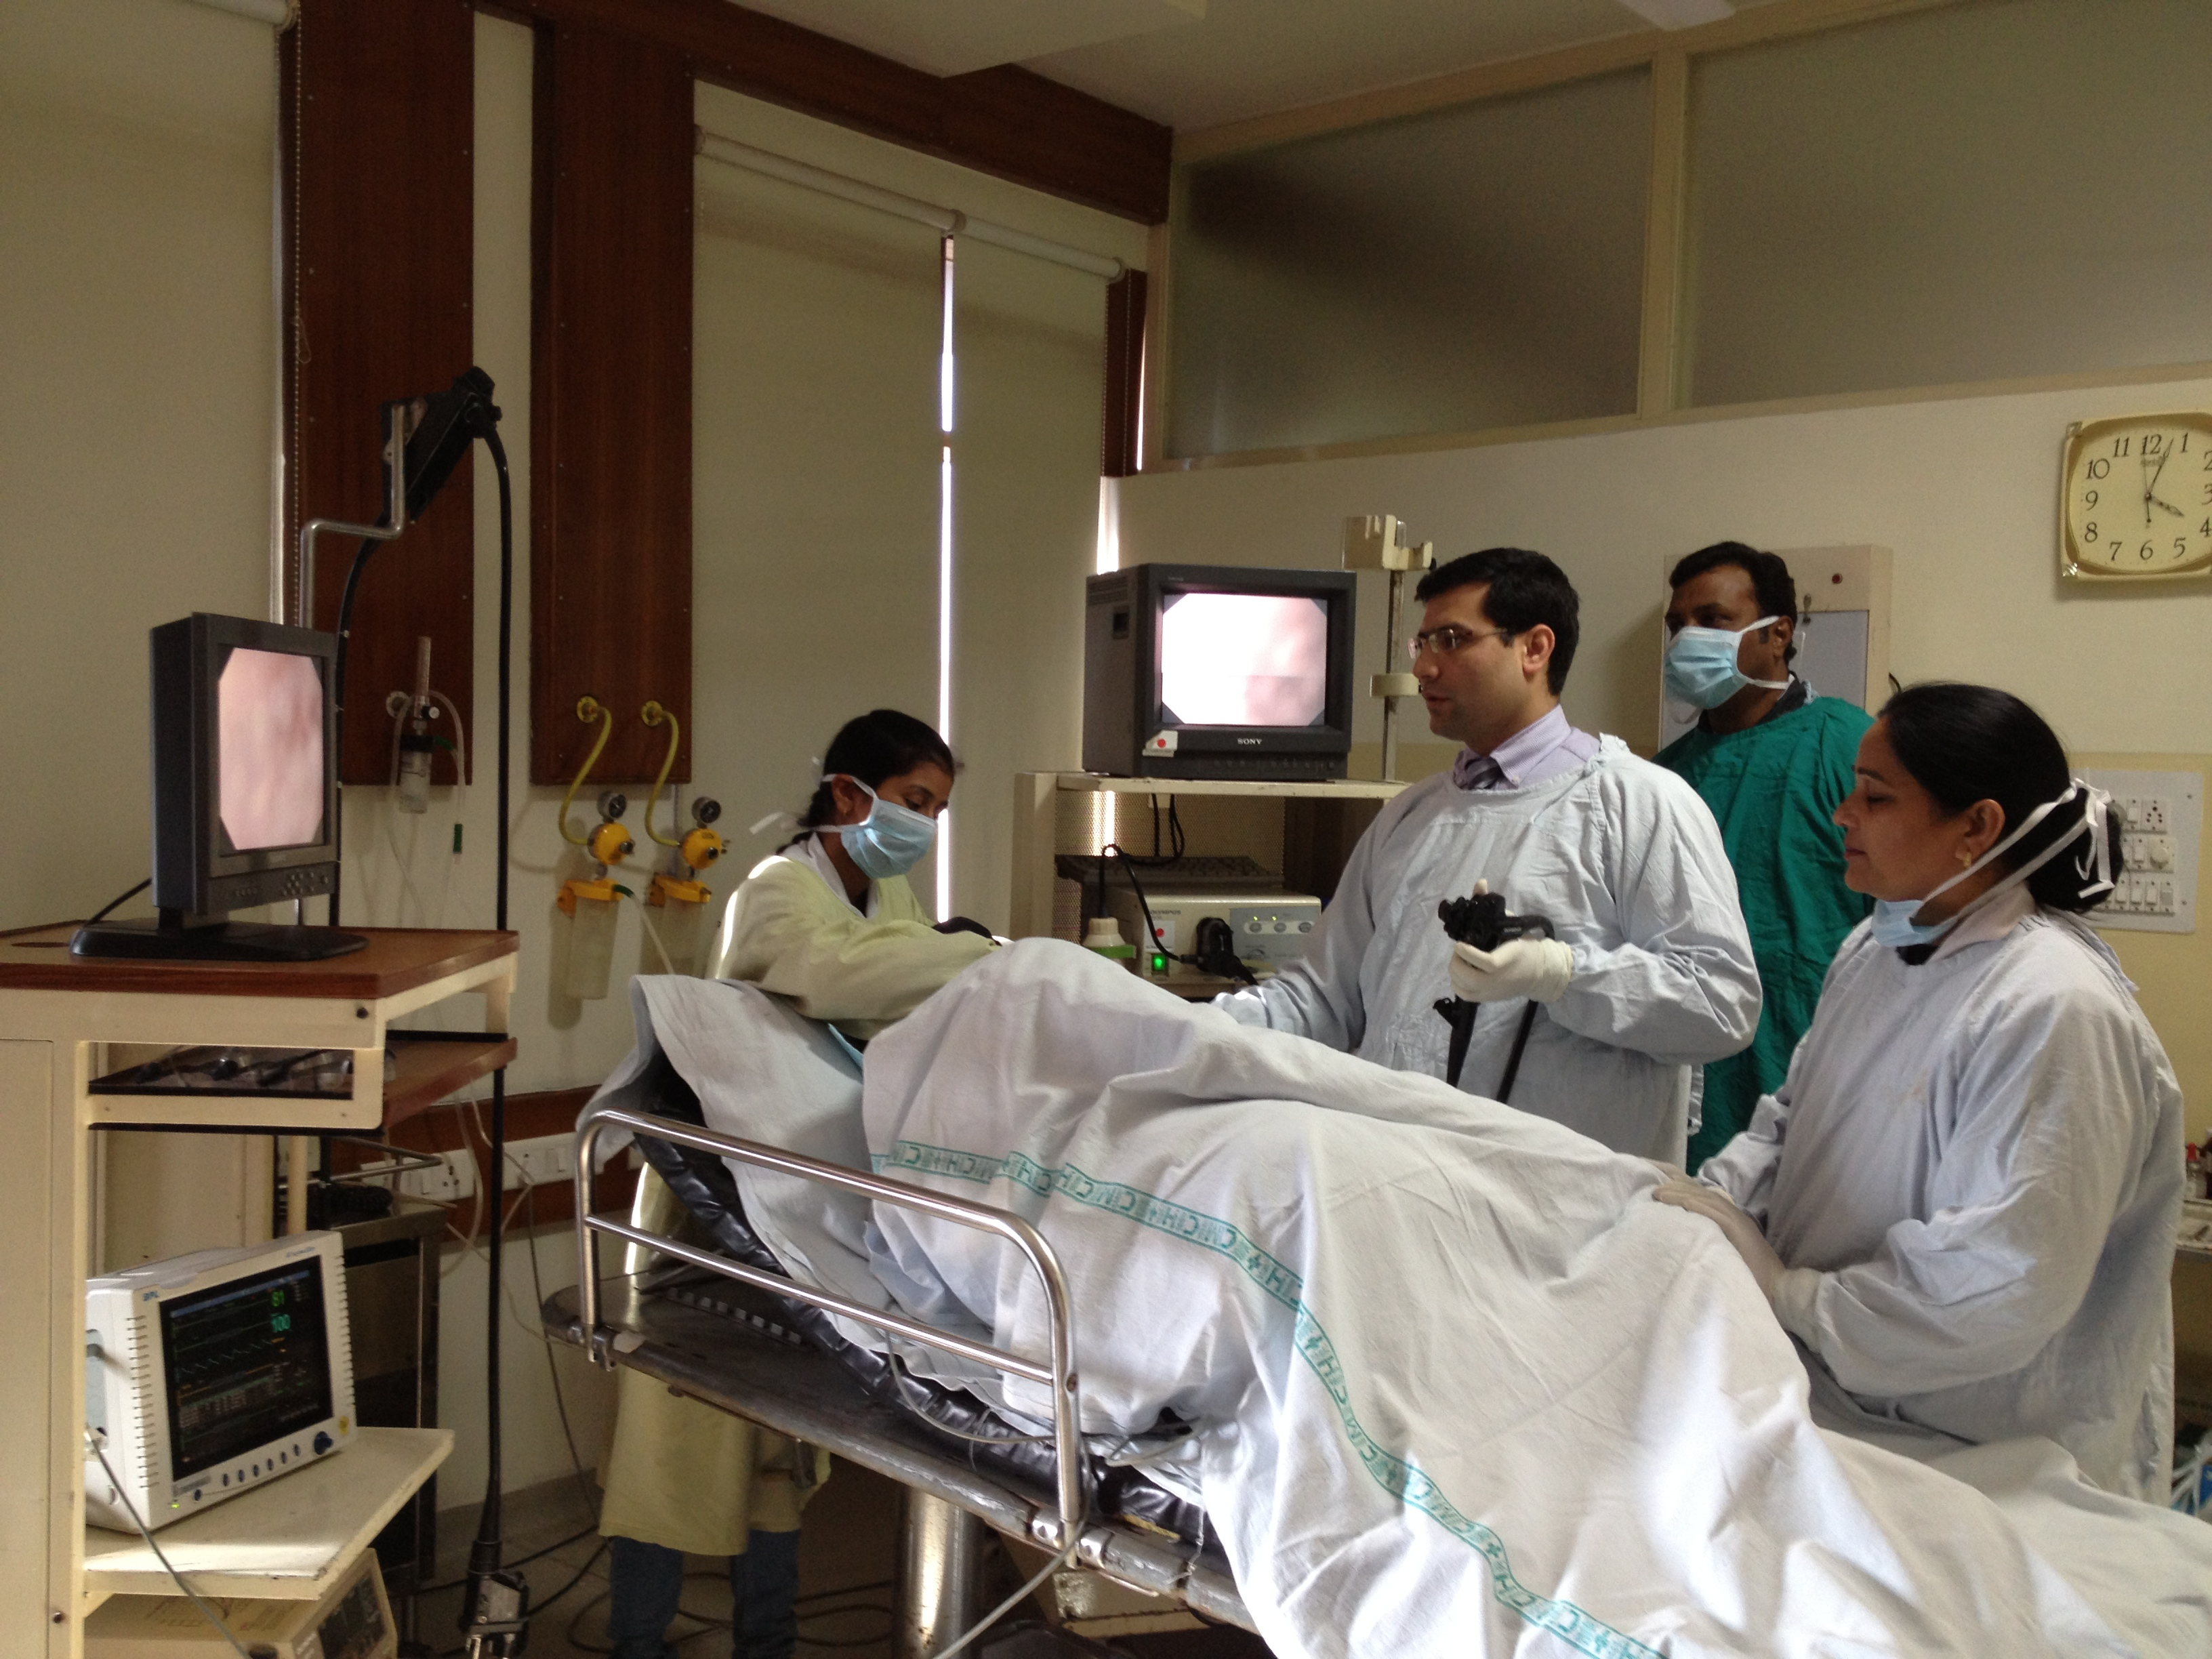 Dr Anish Chopra undertaking upper alimentary endoscopy